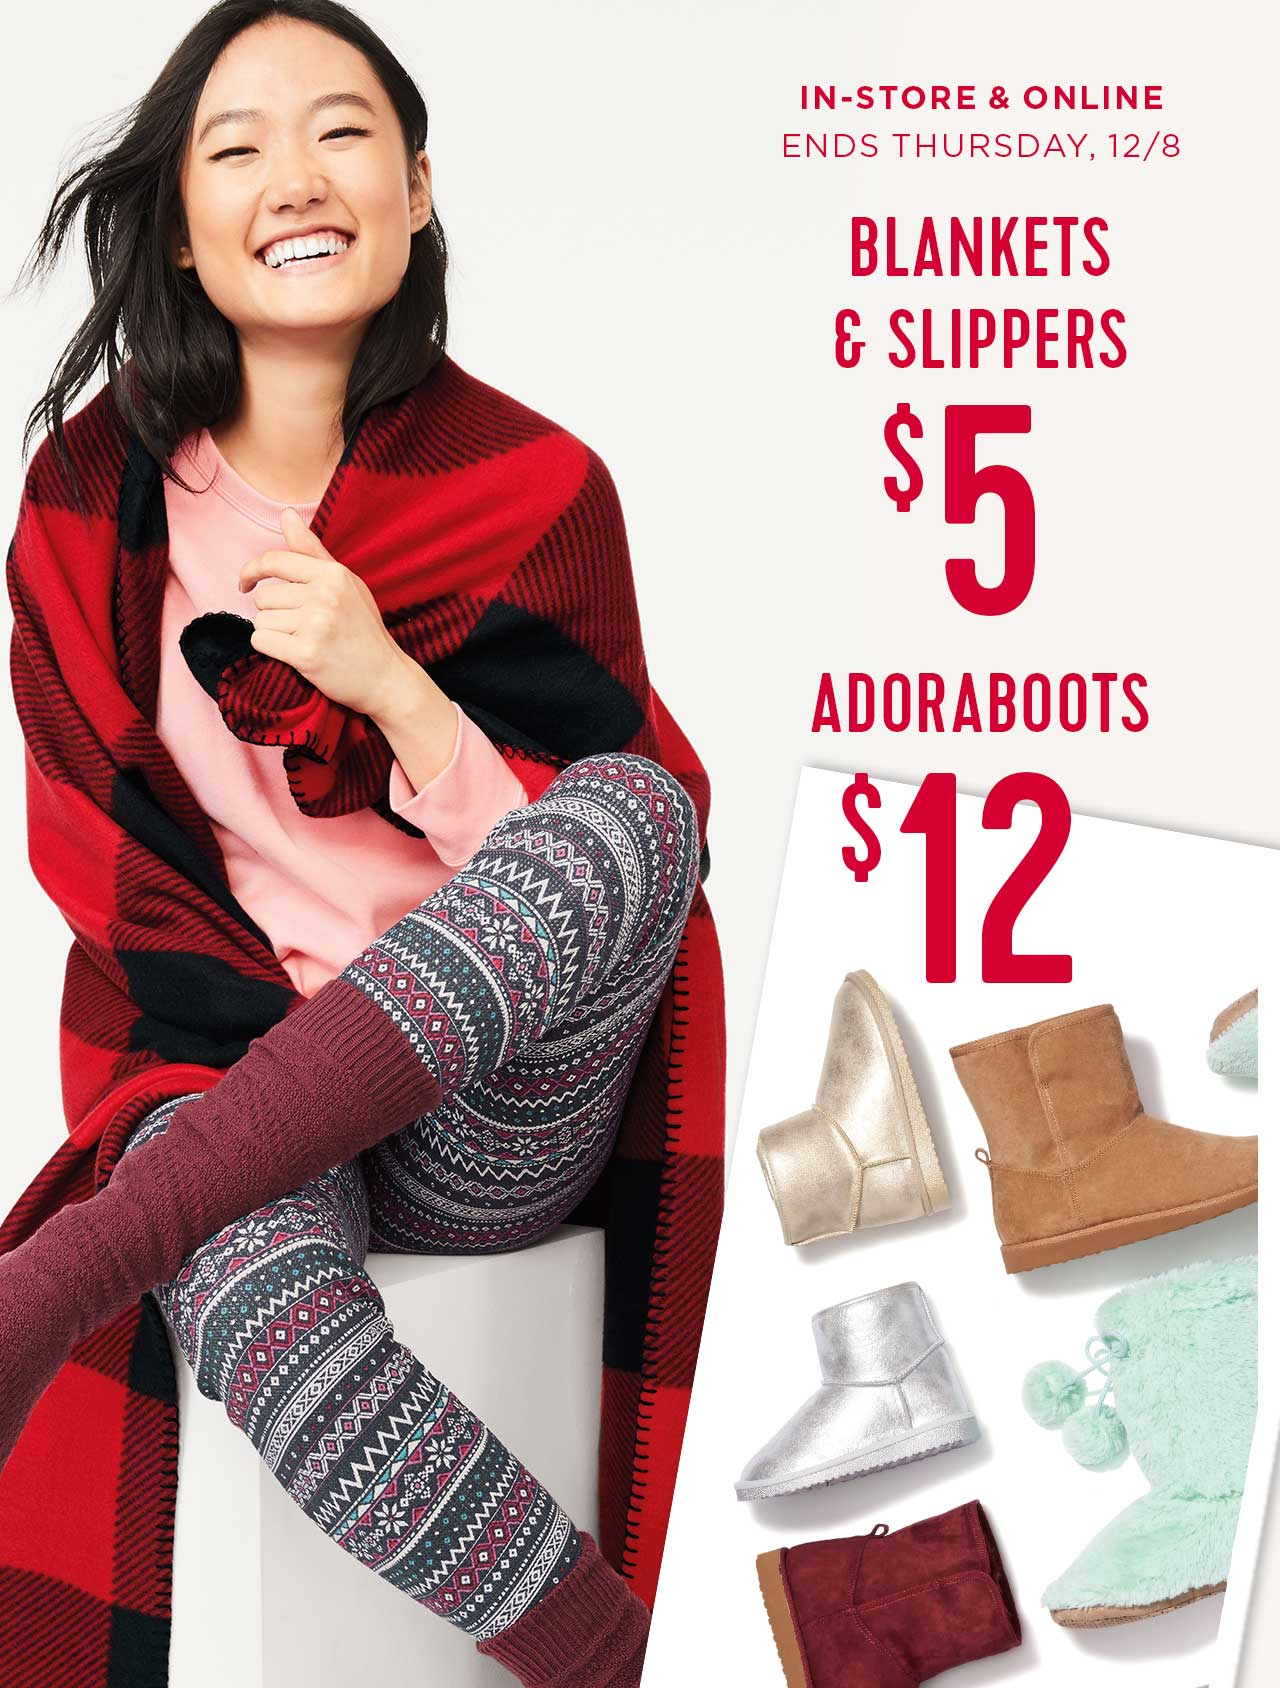 IN-STORE & ONLINE ENDS THURSDAY, 12/8 | BLANKETS & SLIPPERS $5 | ADORABOOTS $12